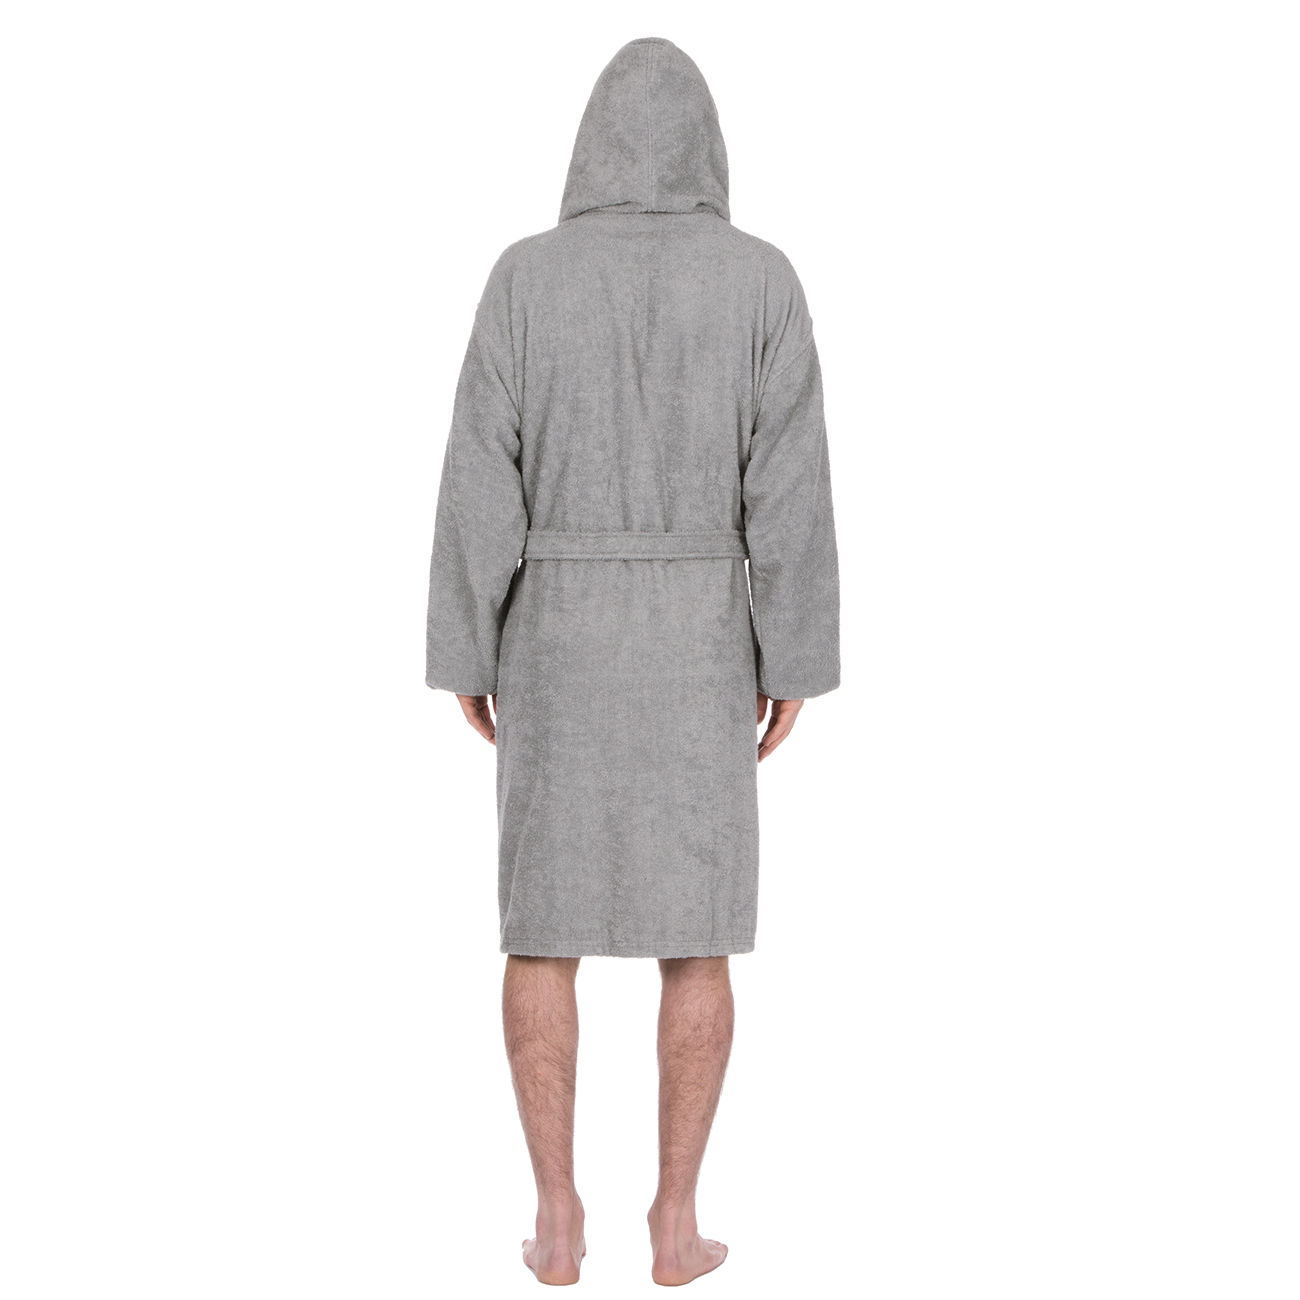 Mens Deluxe Luxury Cotton Soft Terry Cloth Bath Spa Robe